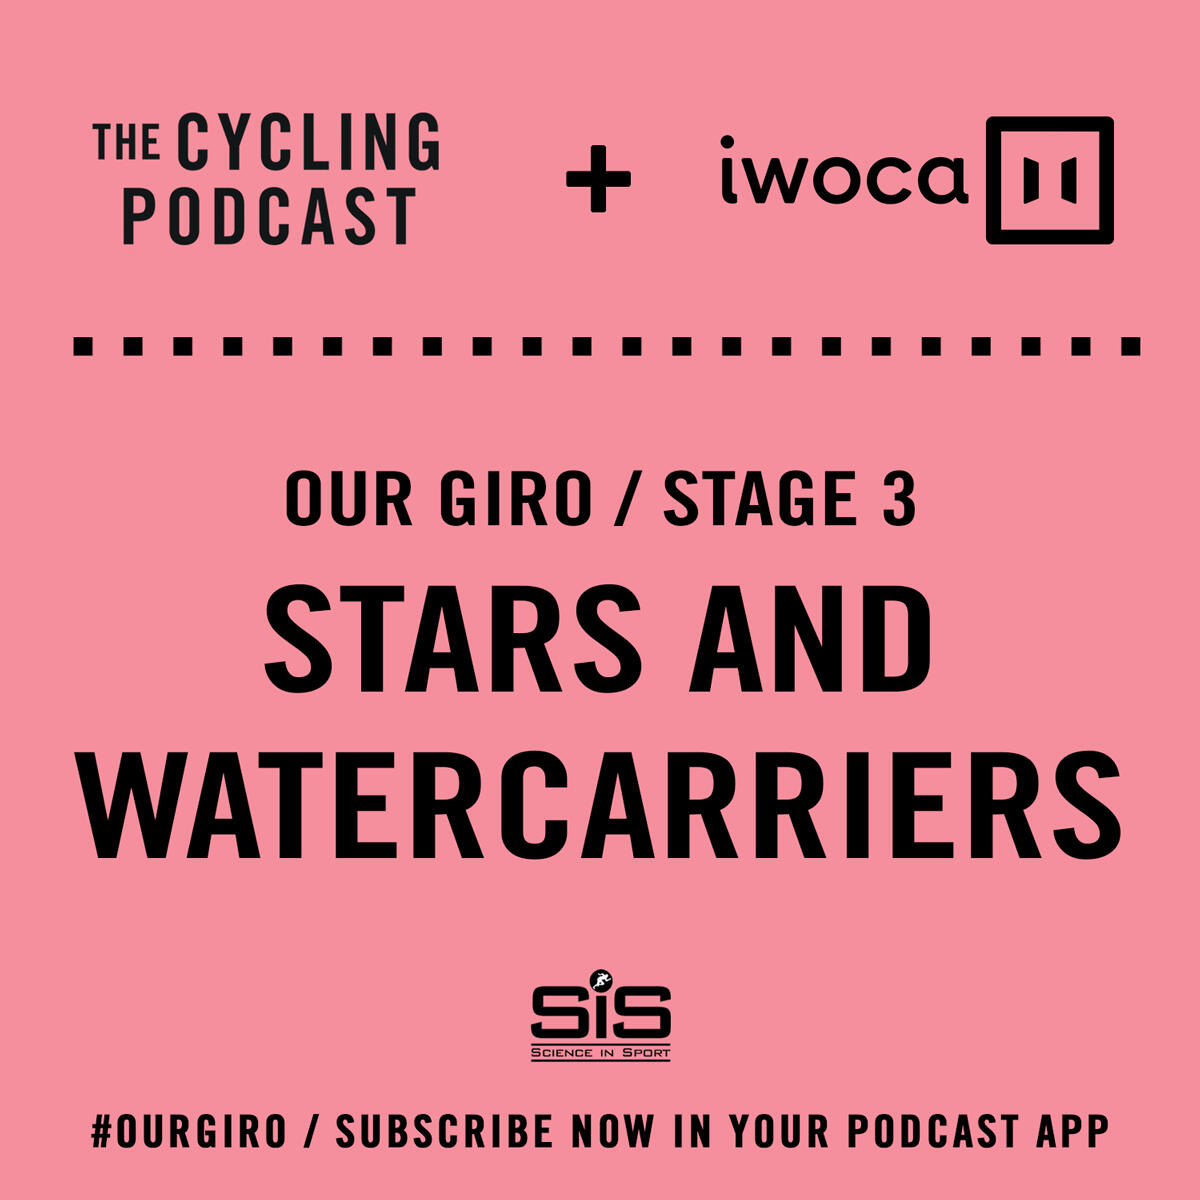 48: Our Giro stage 3: Stars and Watercarriers